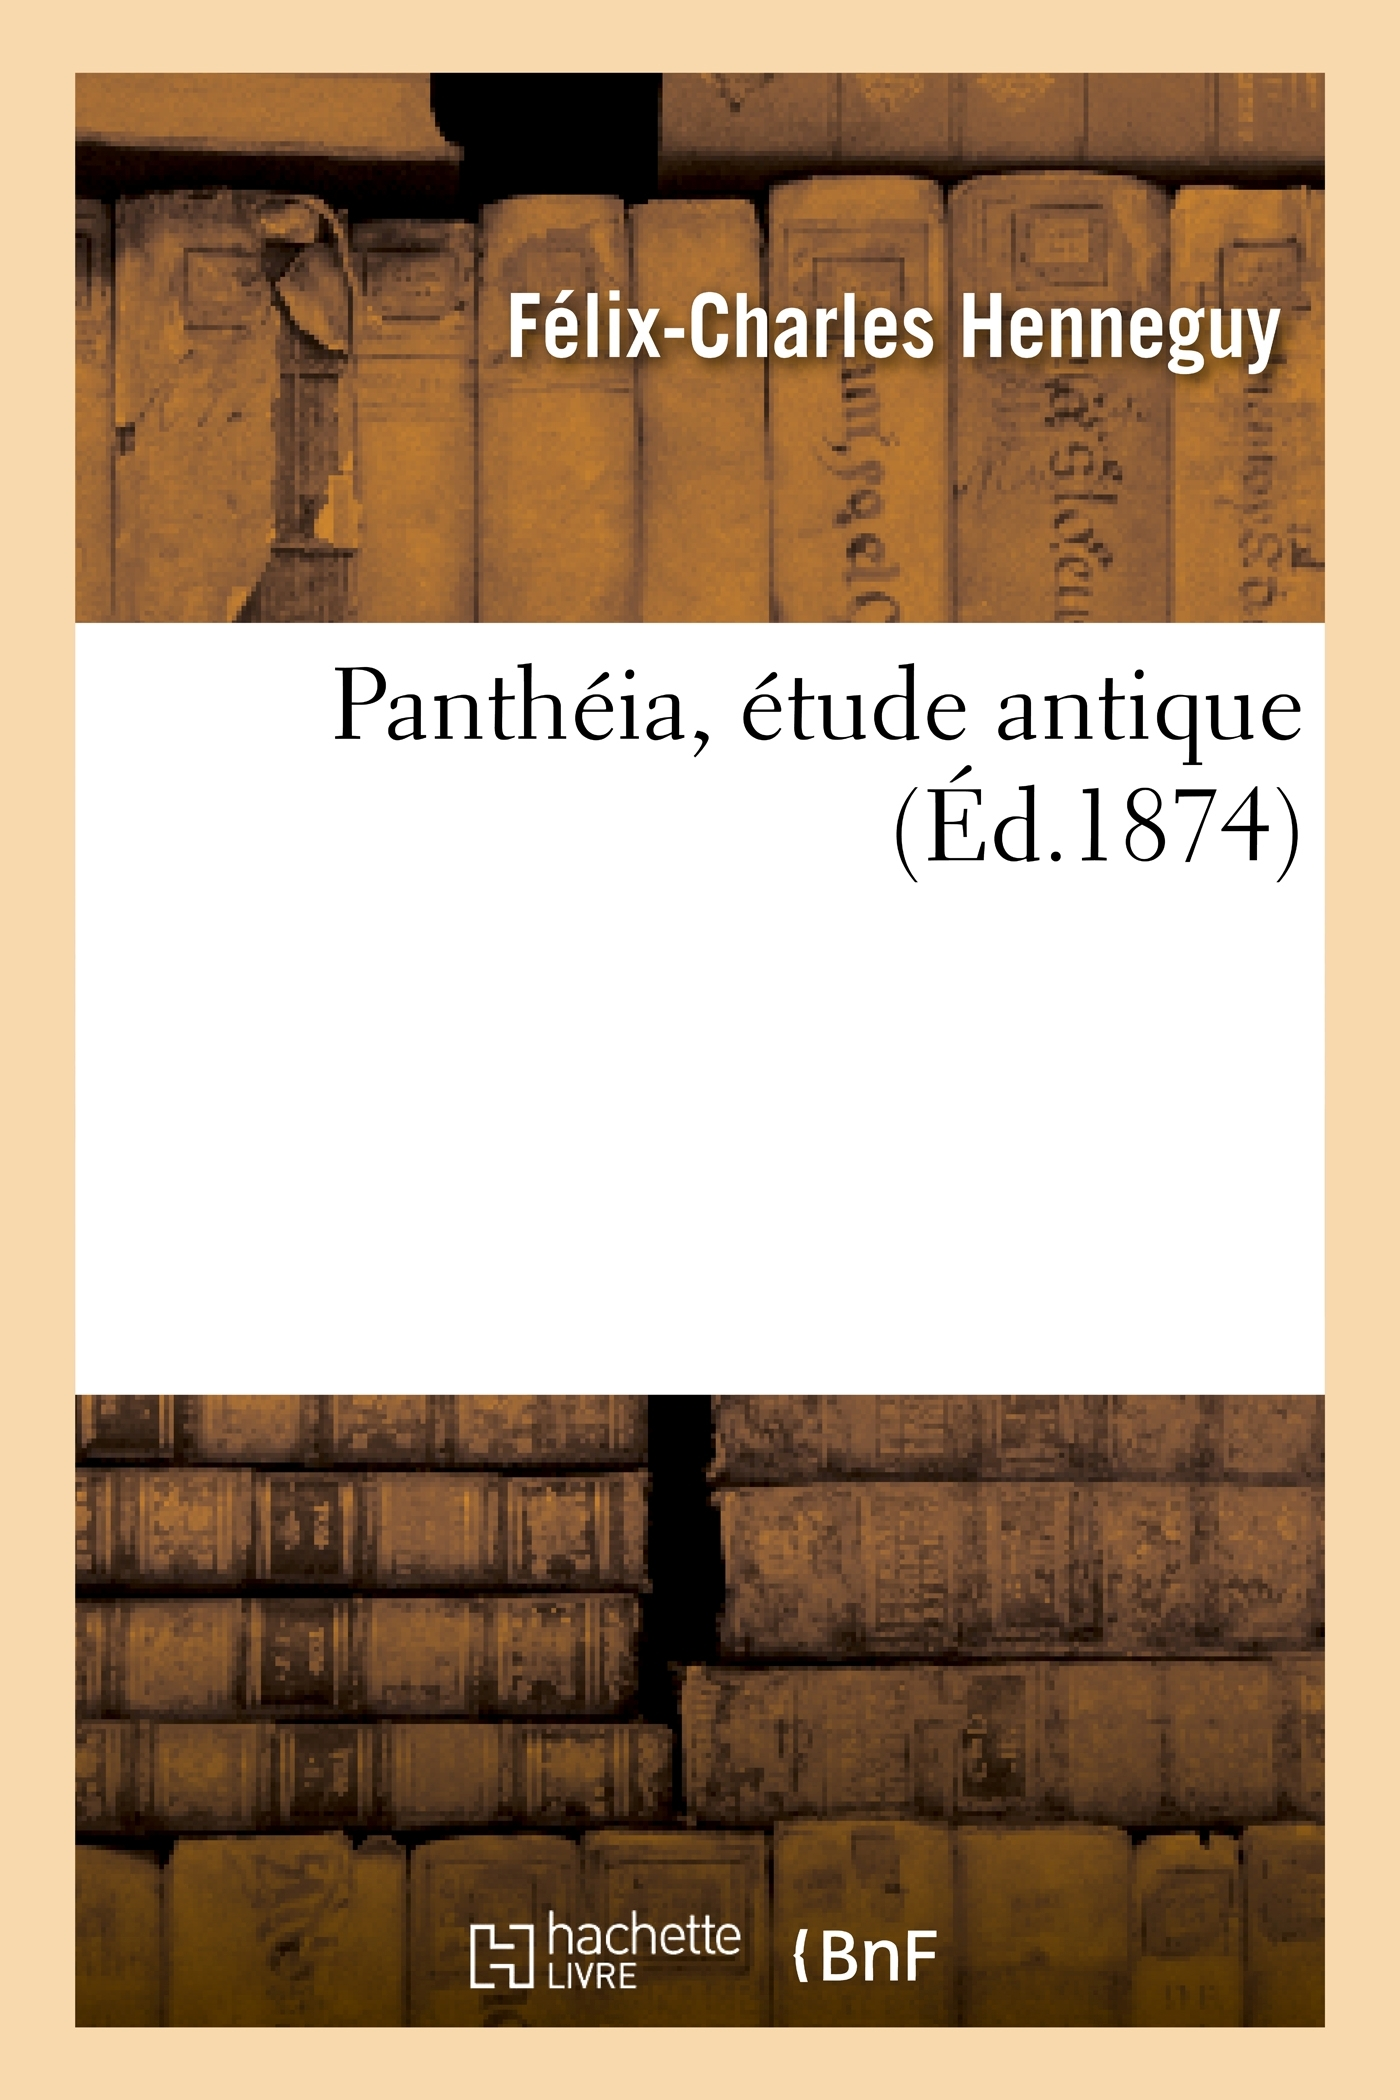 PANTHEIA, ETUDE ANTIQUE